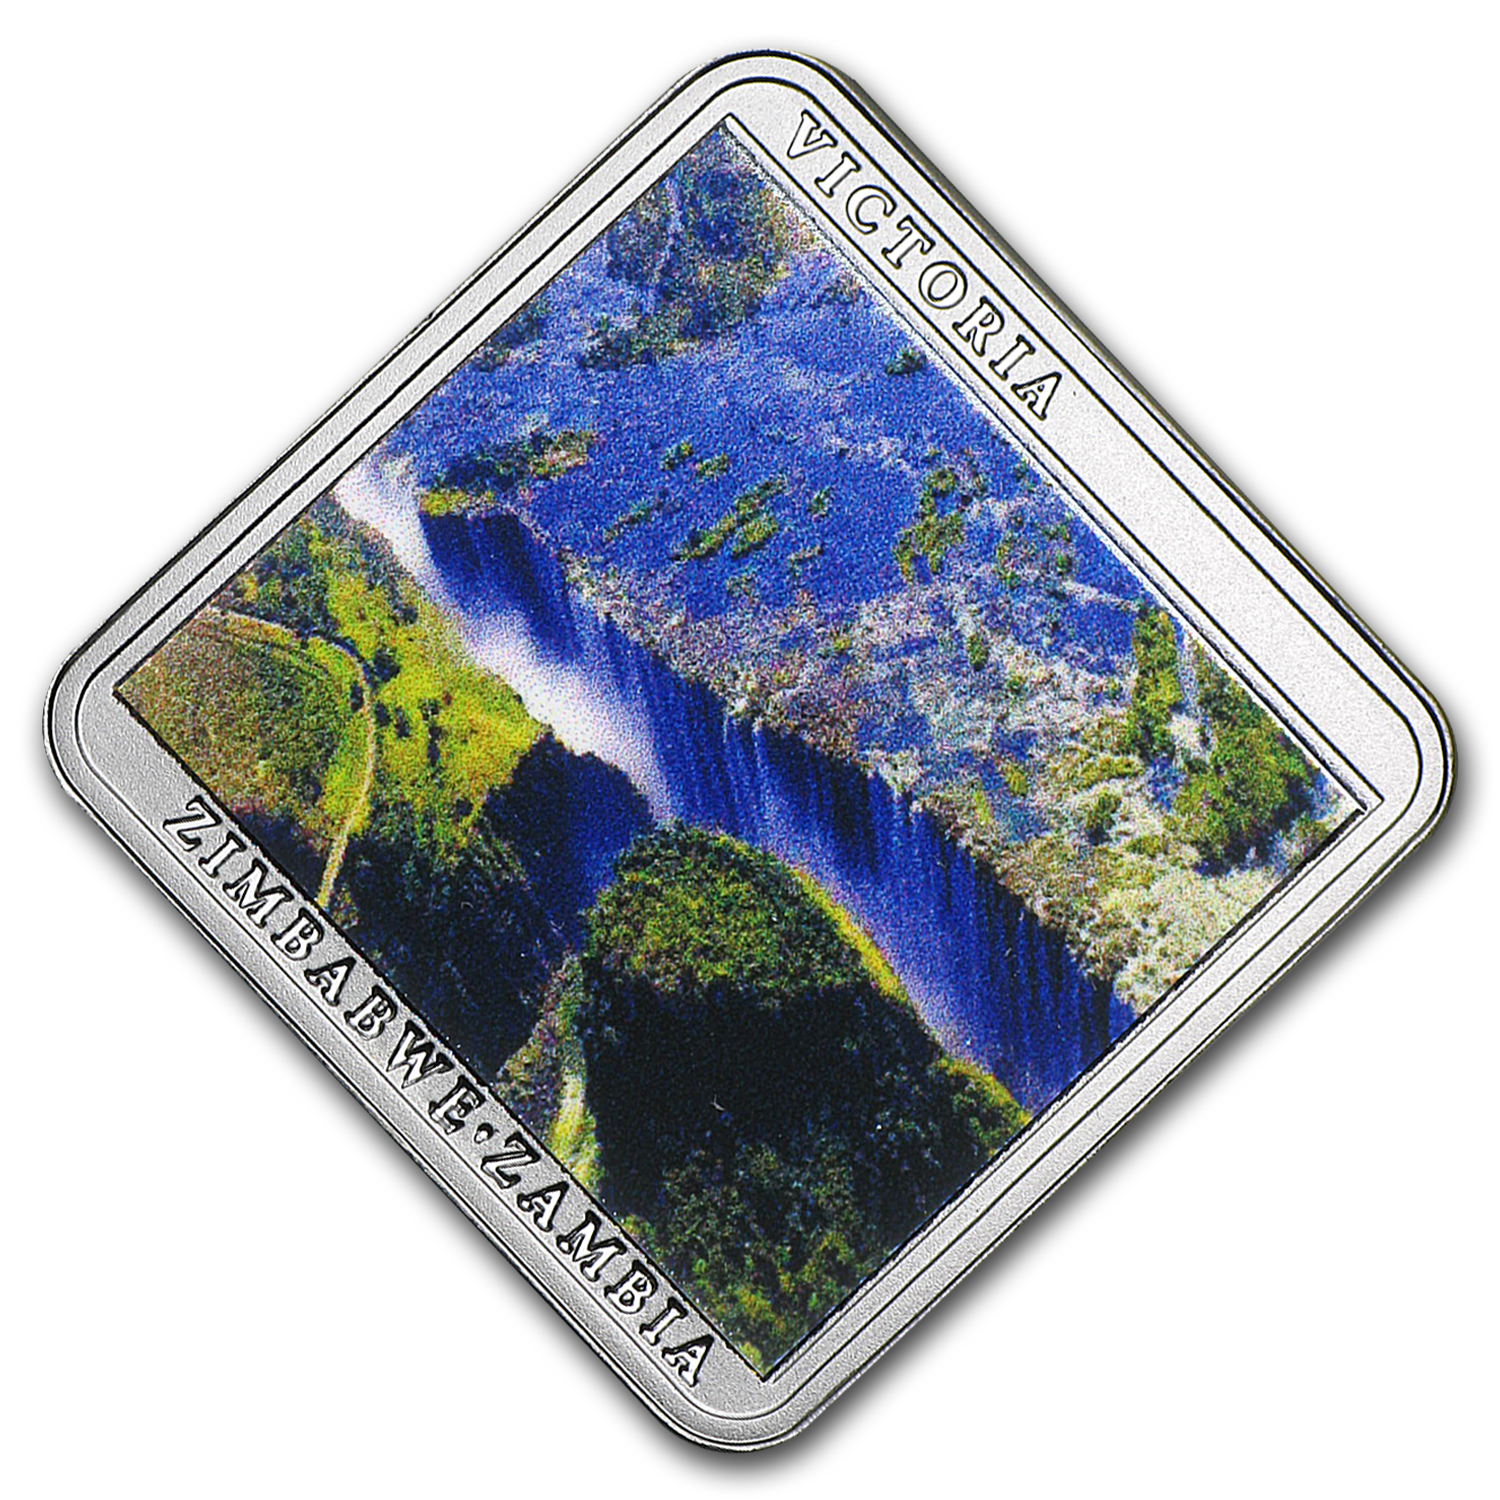 2015 Niue Silver Victoria Falls Waterfall Square Coin Proof